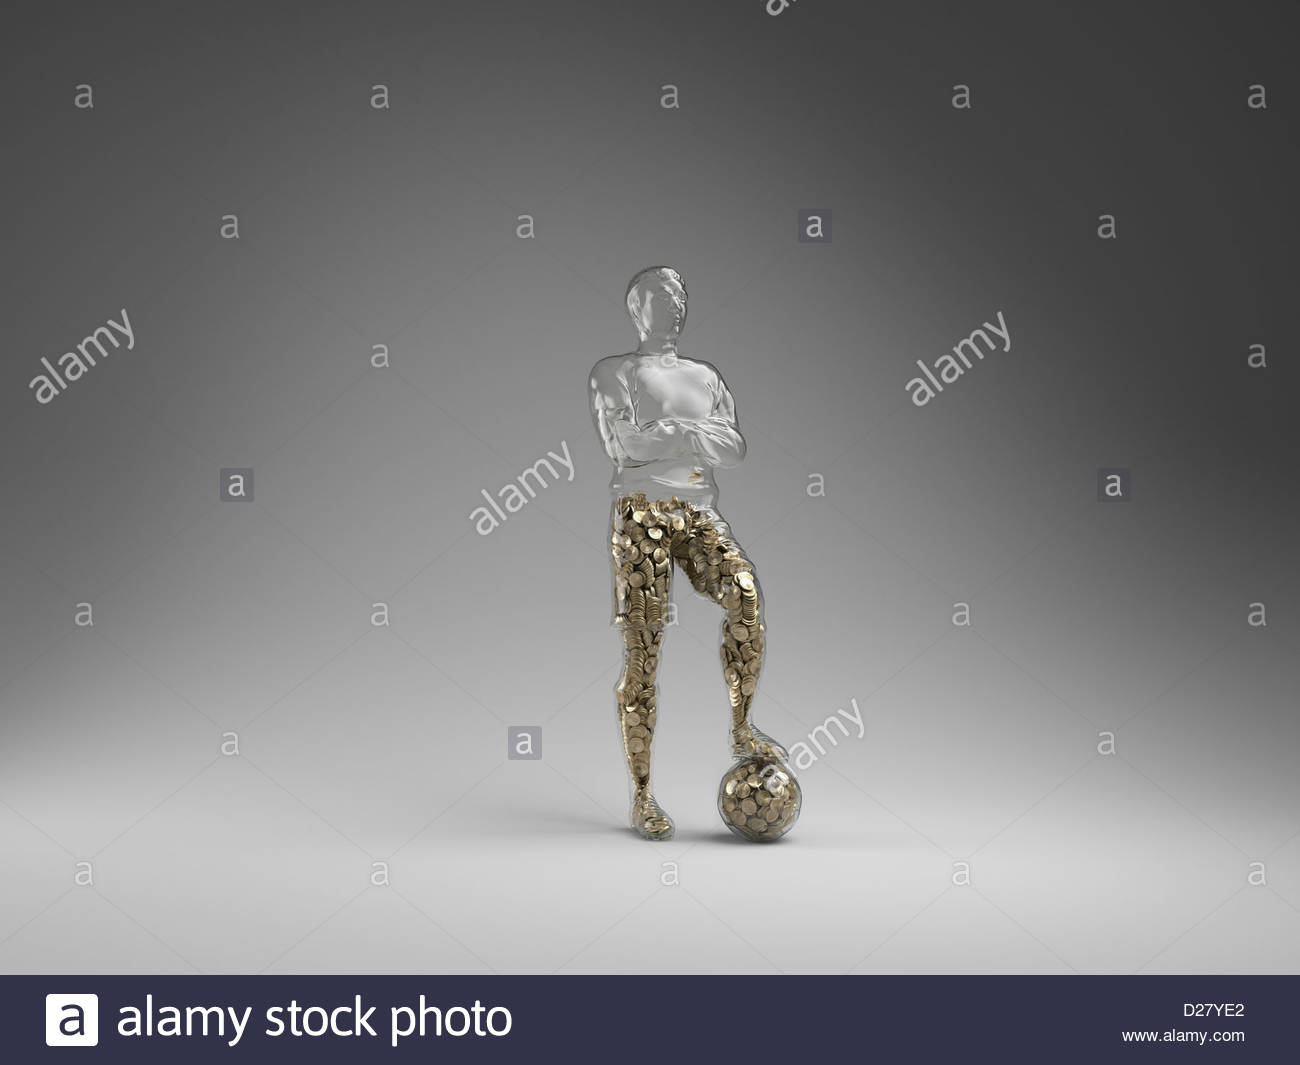 Coins filling half of hollow soccer player Stock Photo